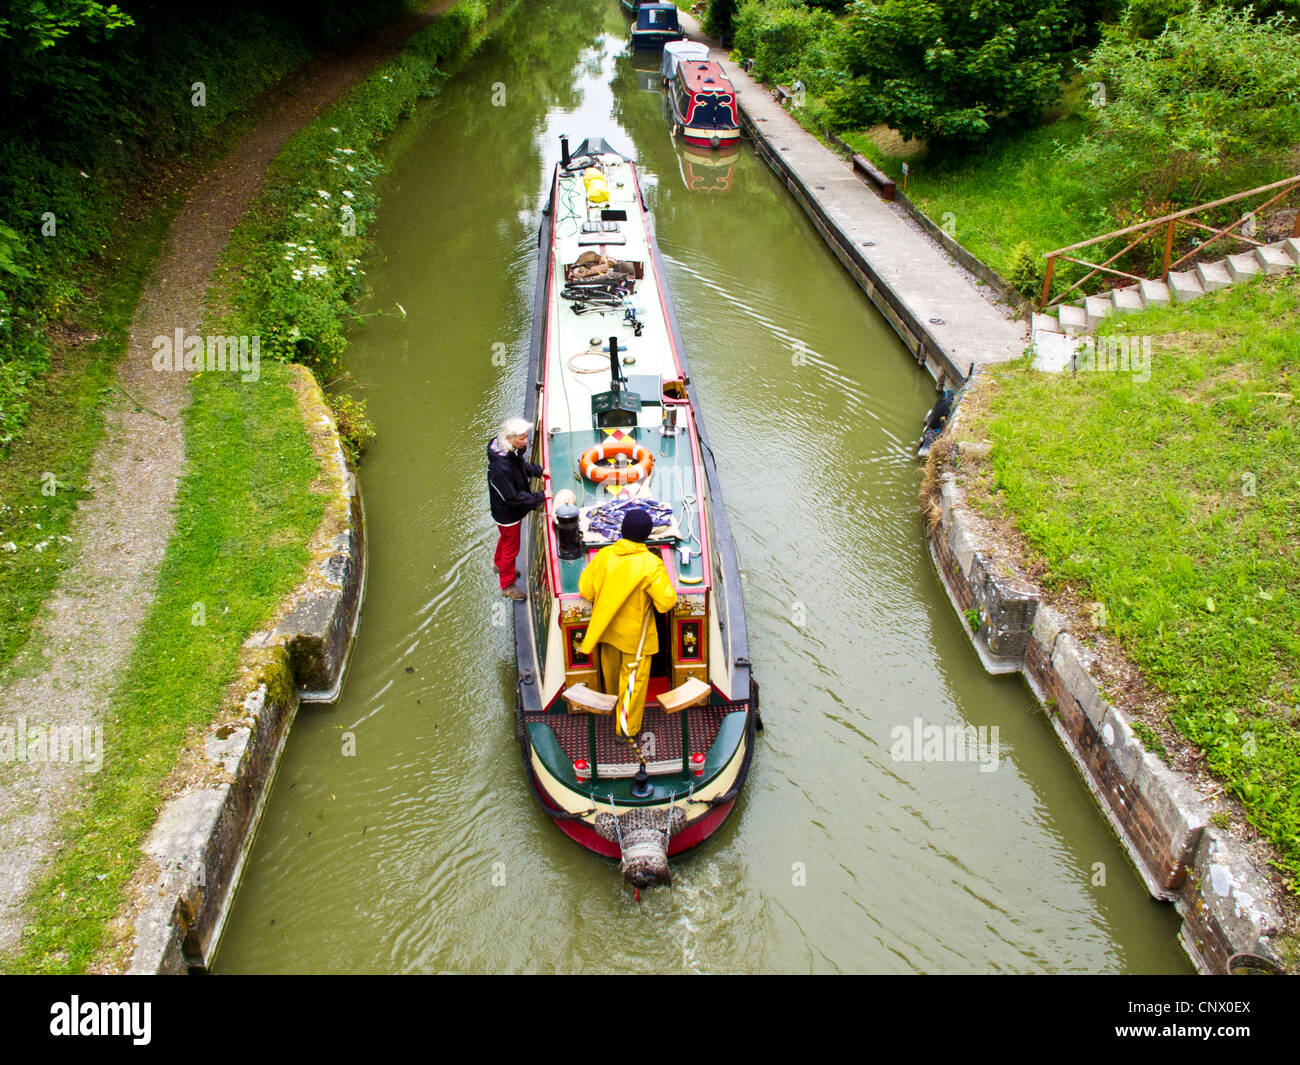 Narrowboats near Pewsey Wharf on the Kennet and Avon Canal in Wiltshire, England, UK - Stock Image